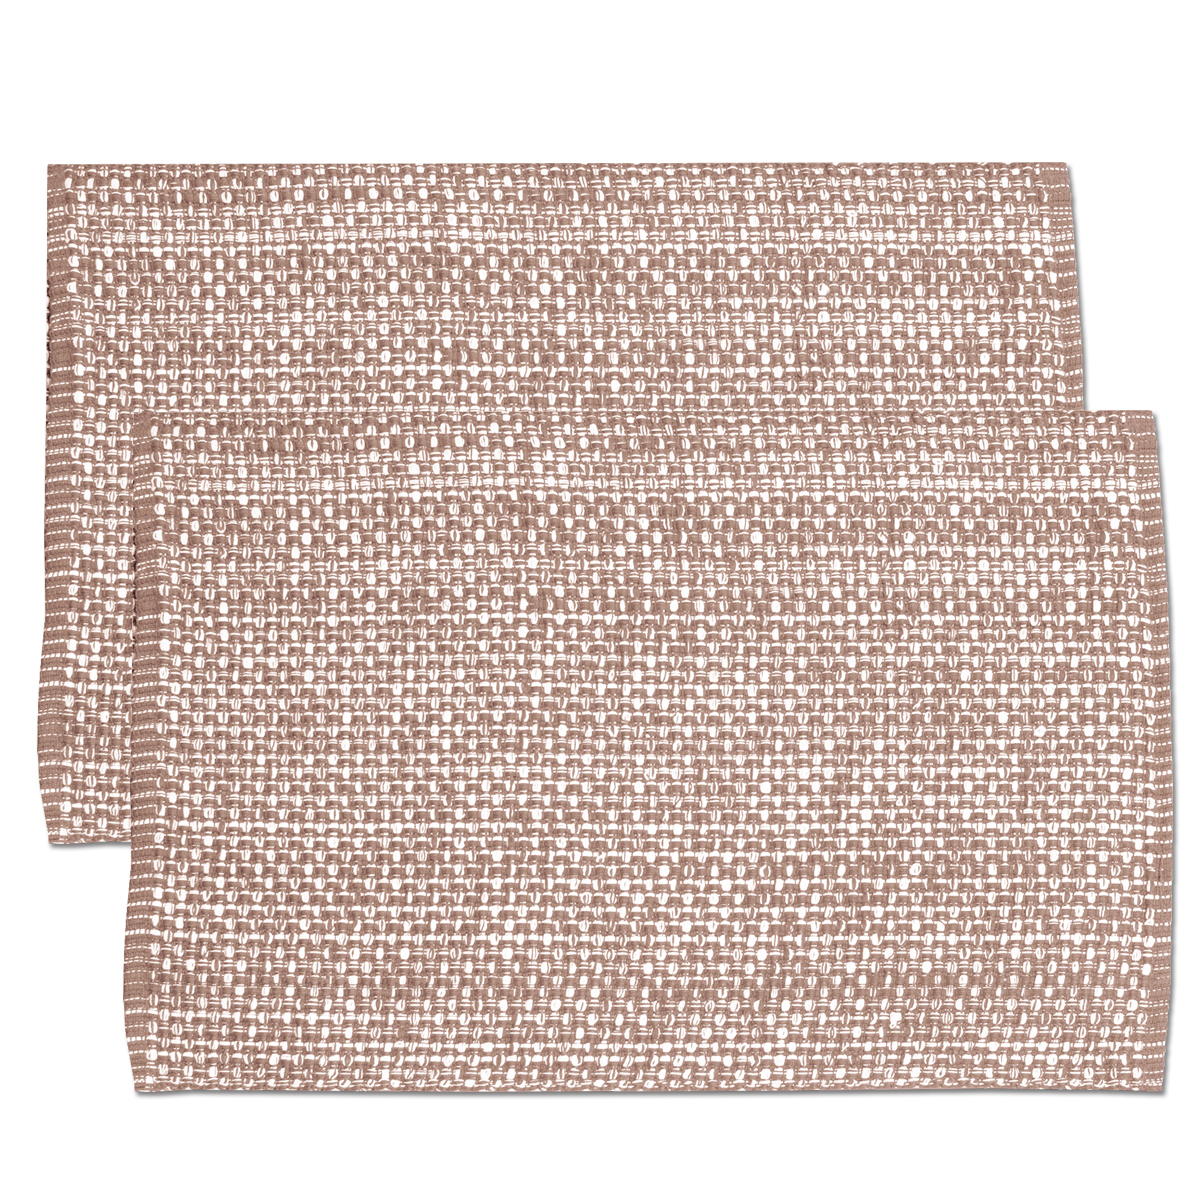 "Lintex Trends Collection Two Tone Woven Placemat 100% Cotton 10"" x 19"" 6 Pack"